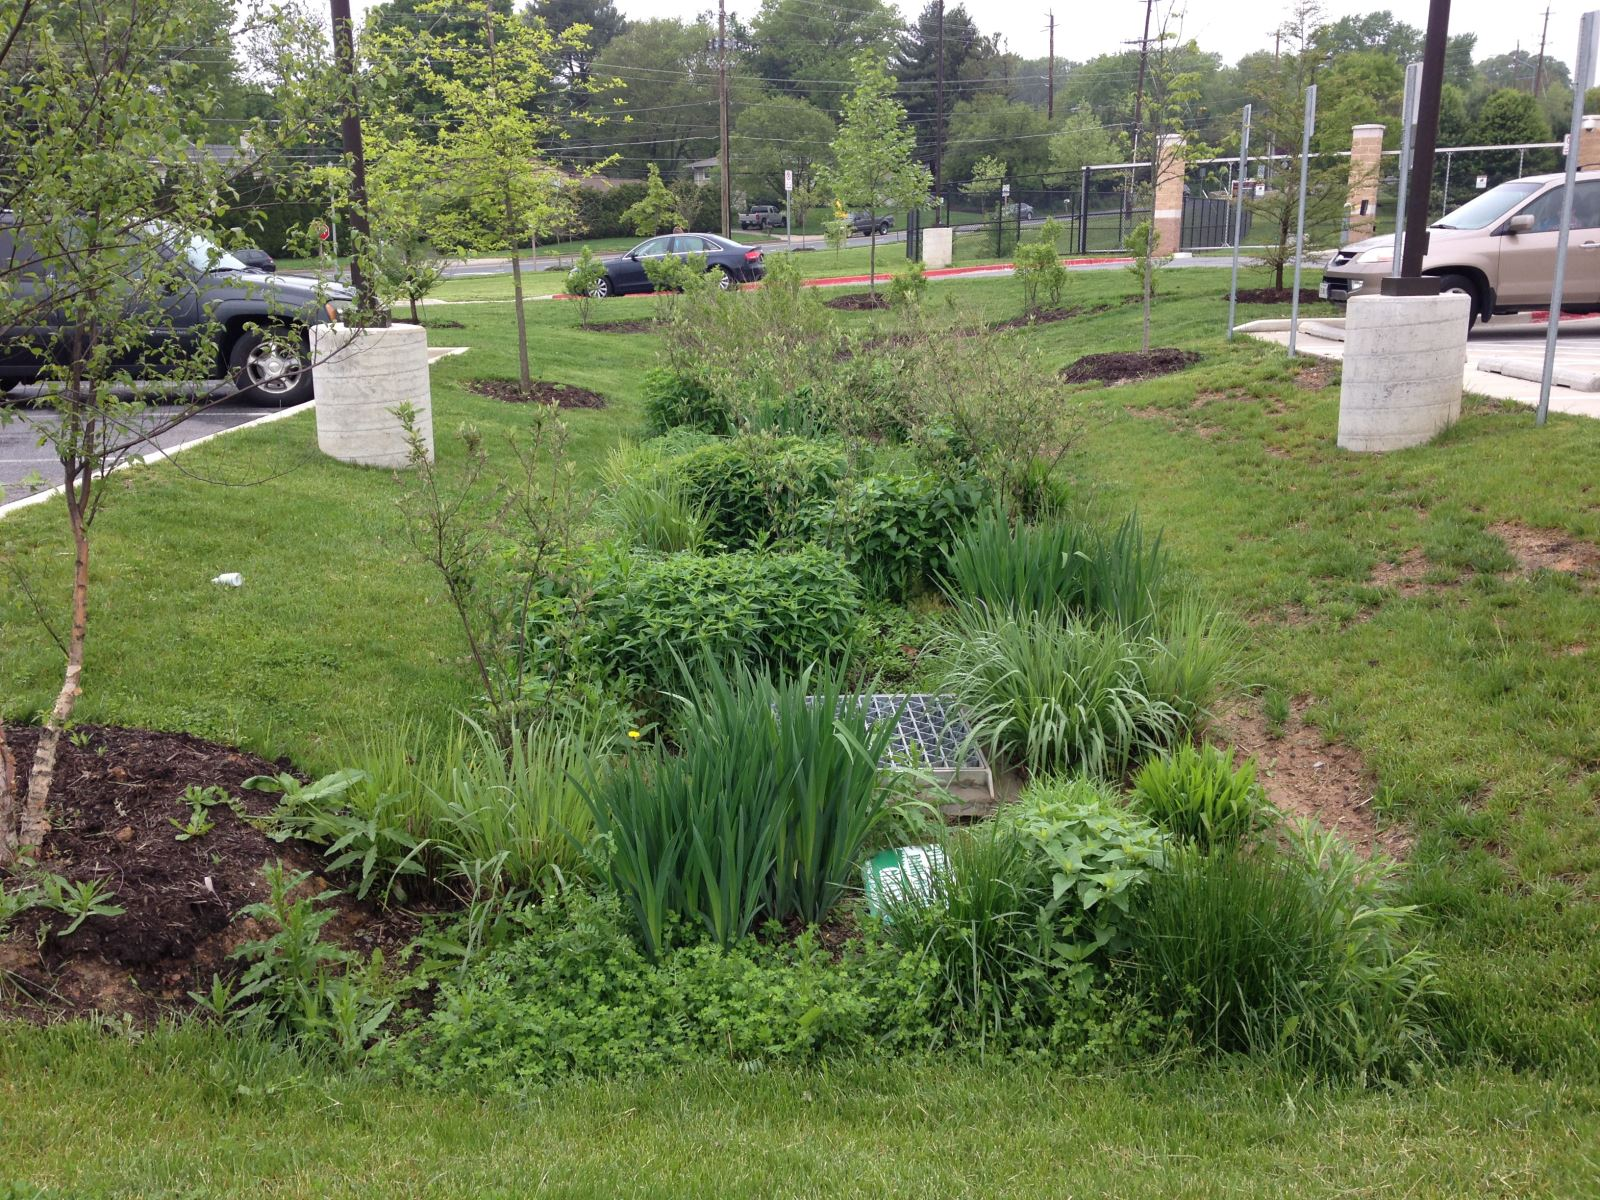 Stormwater Management - Magnolia provides turnkey, end-to-end solution delivery - encompassing land, design, construction, and all monitoring and maintenance necessary to achieve project success.